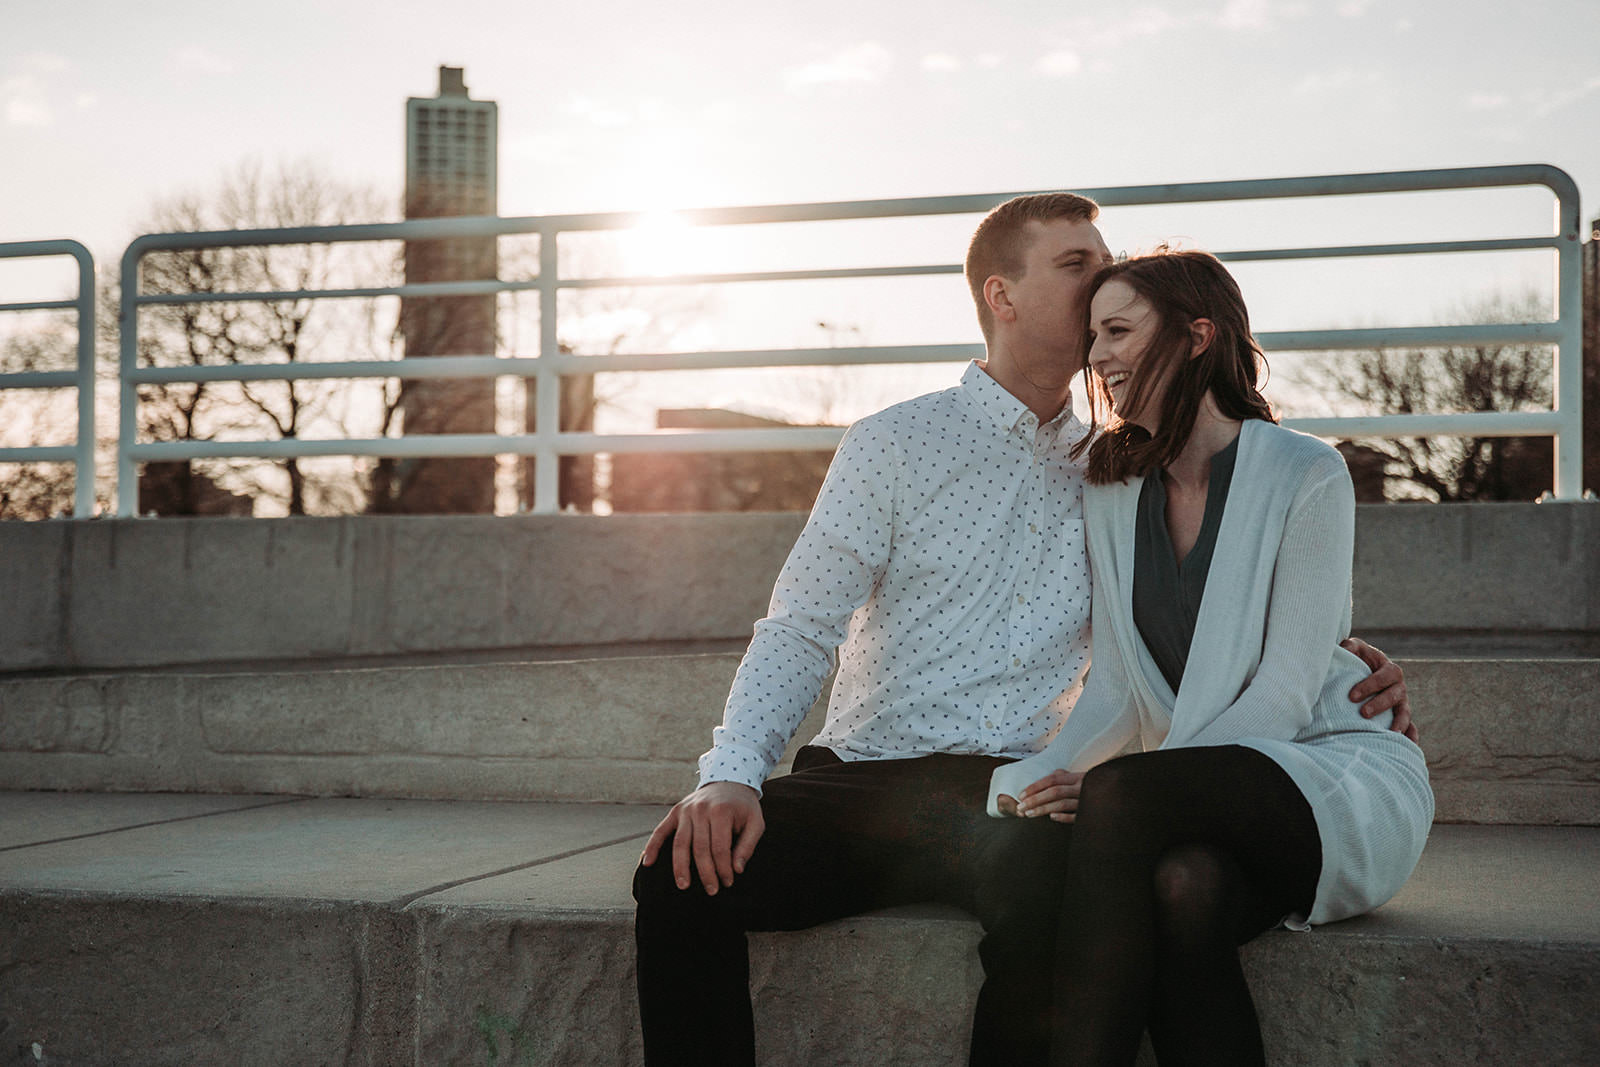 Downtown_chicago_spring_engagement_session-20.jpg